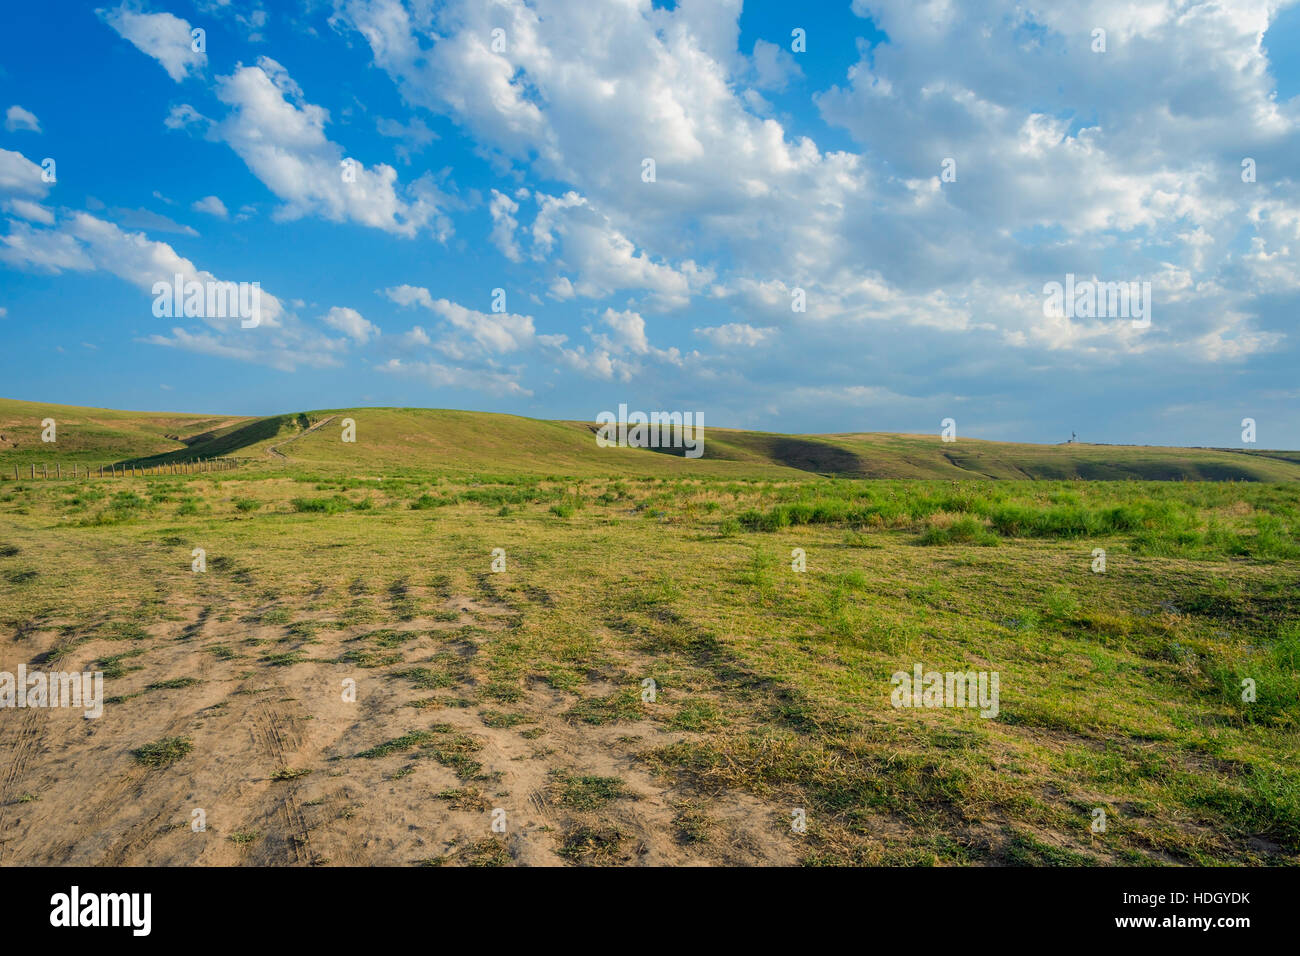 Endless hills of grassland and steppe in Kazakhstan - Stock Image